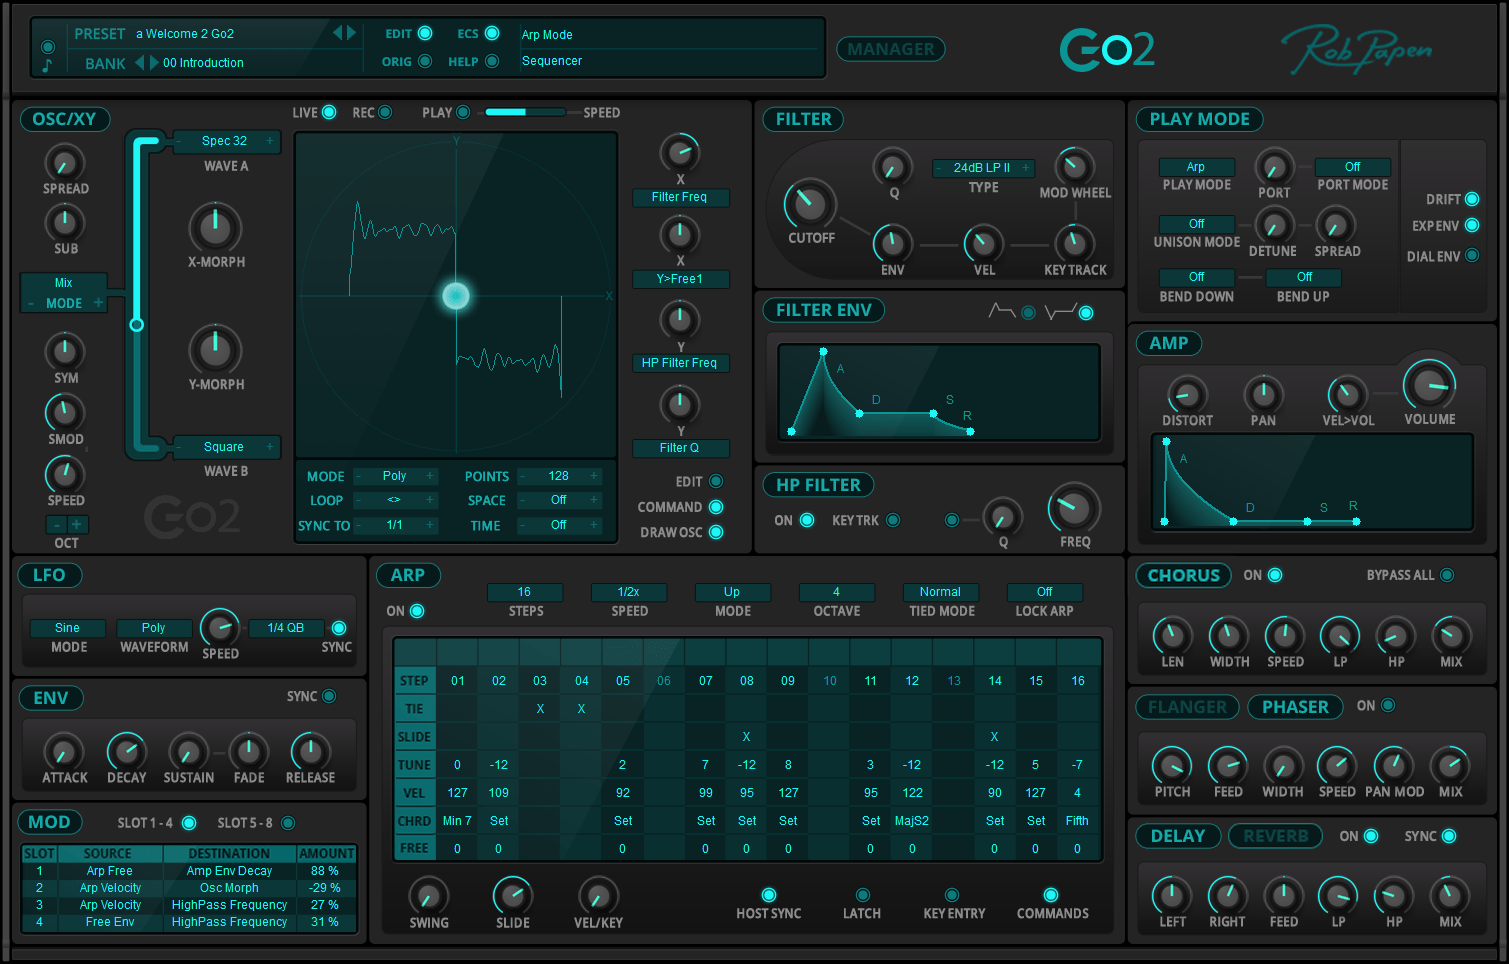 Review of Go2 Synth (VST/AU/AAX) by Rob Papen